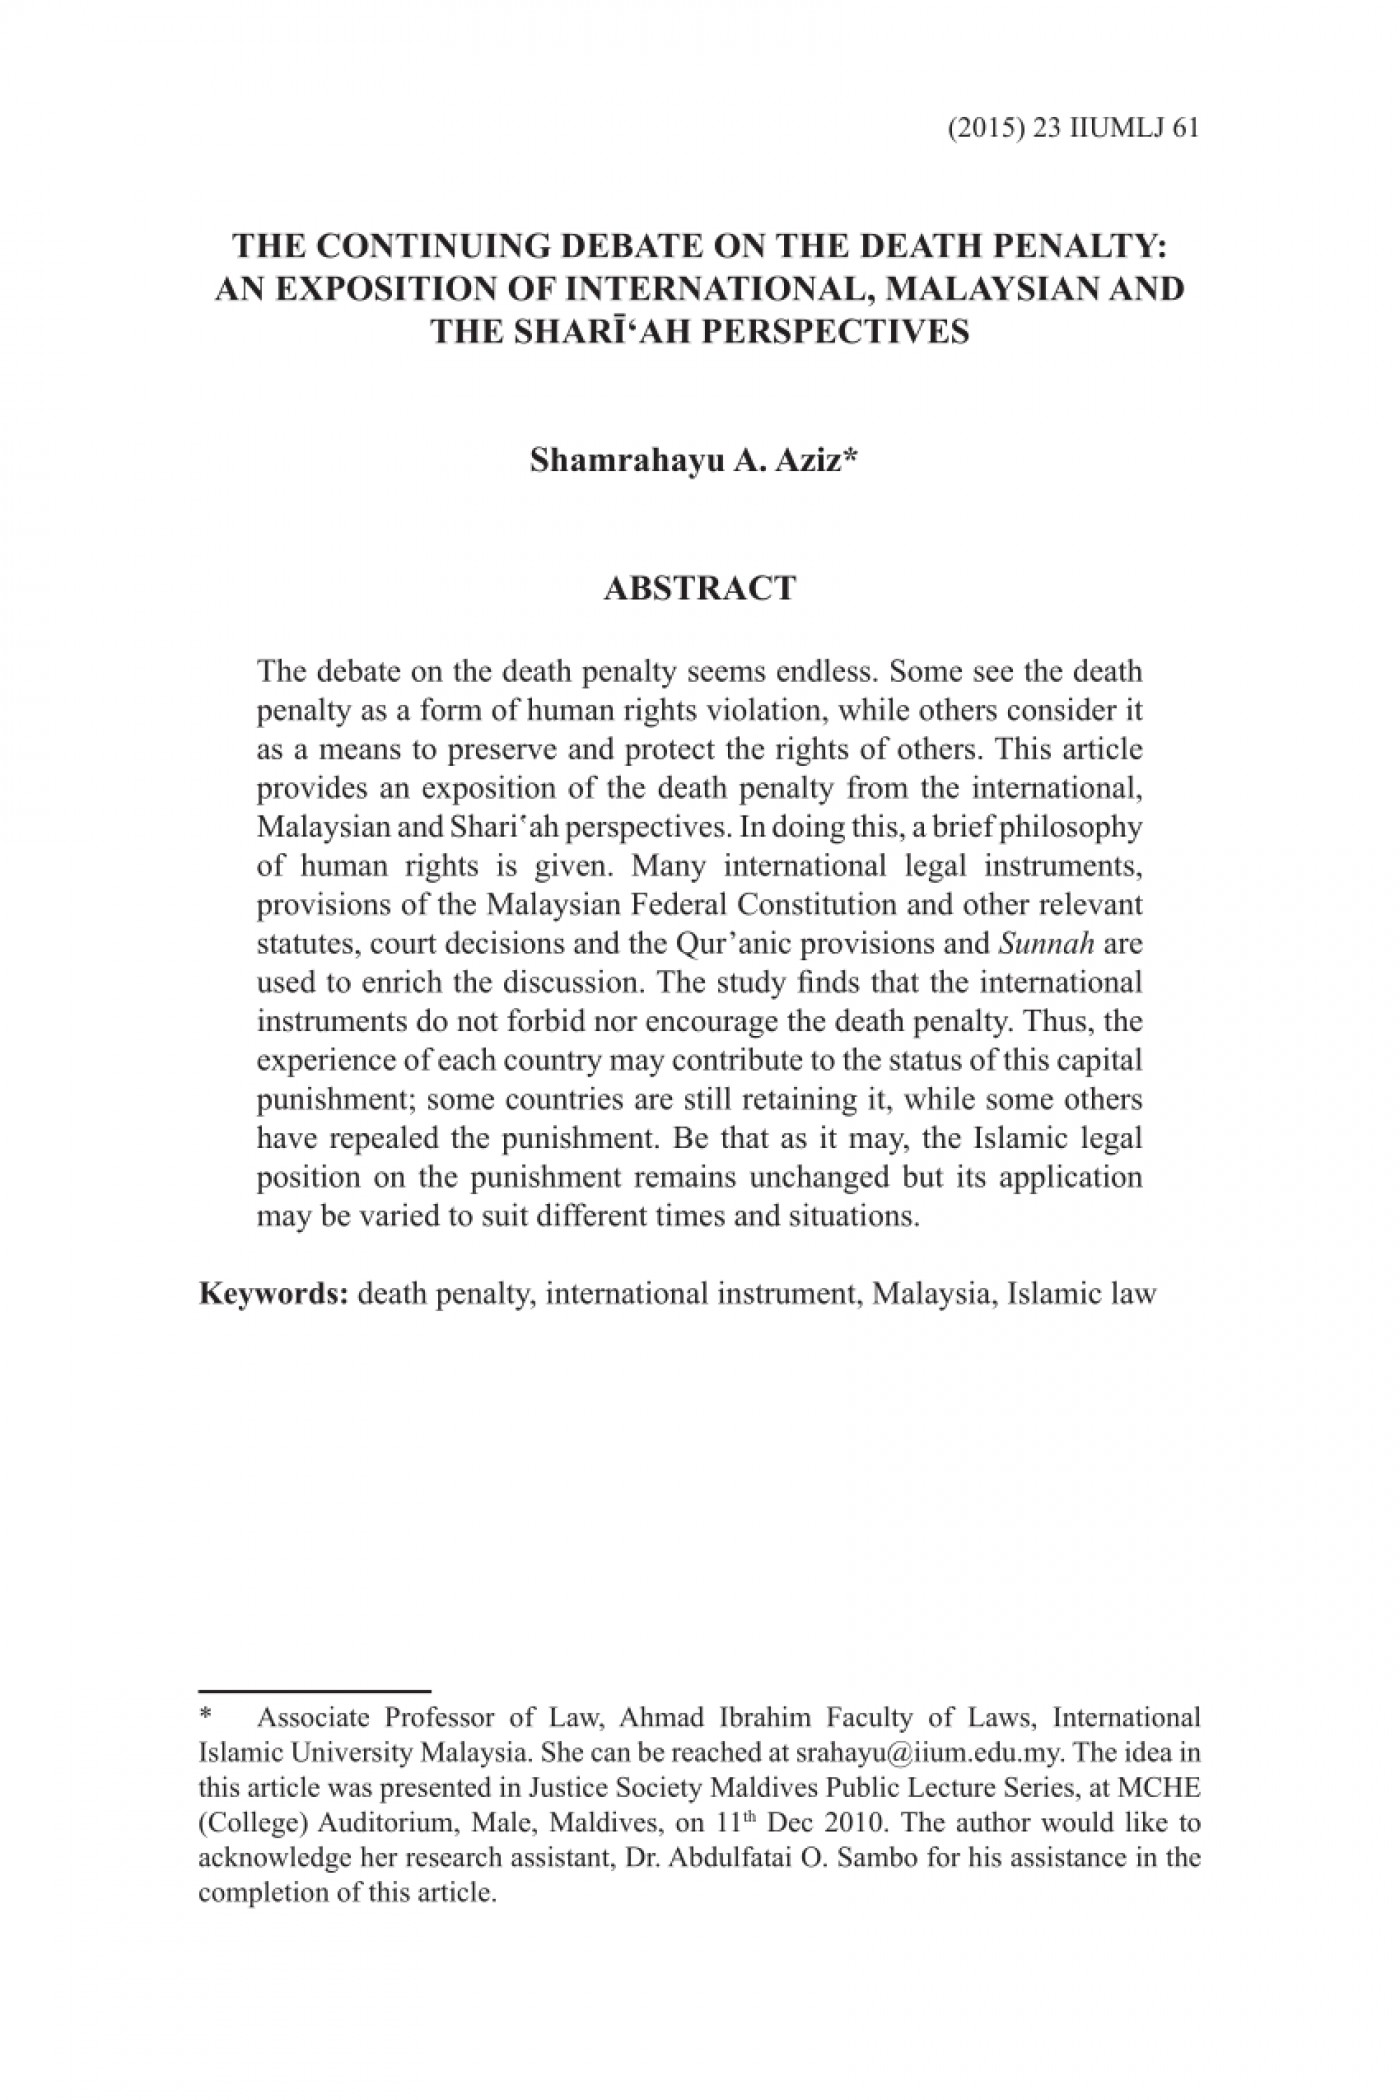 004 Death Penalty Research Paper Abstract Remarkable 1400